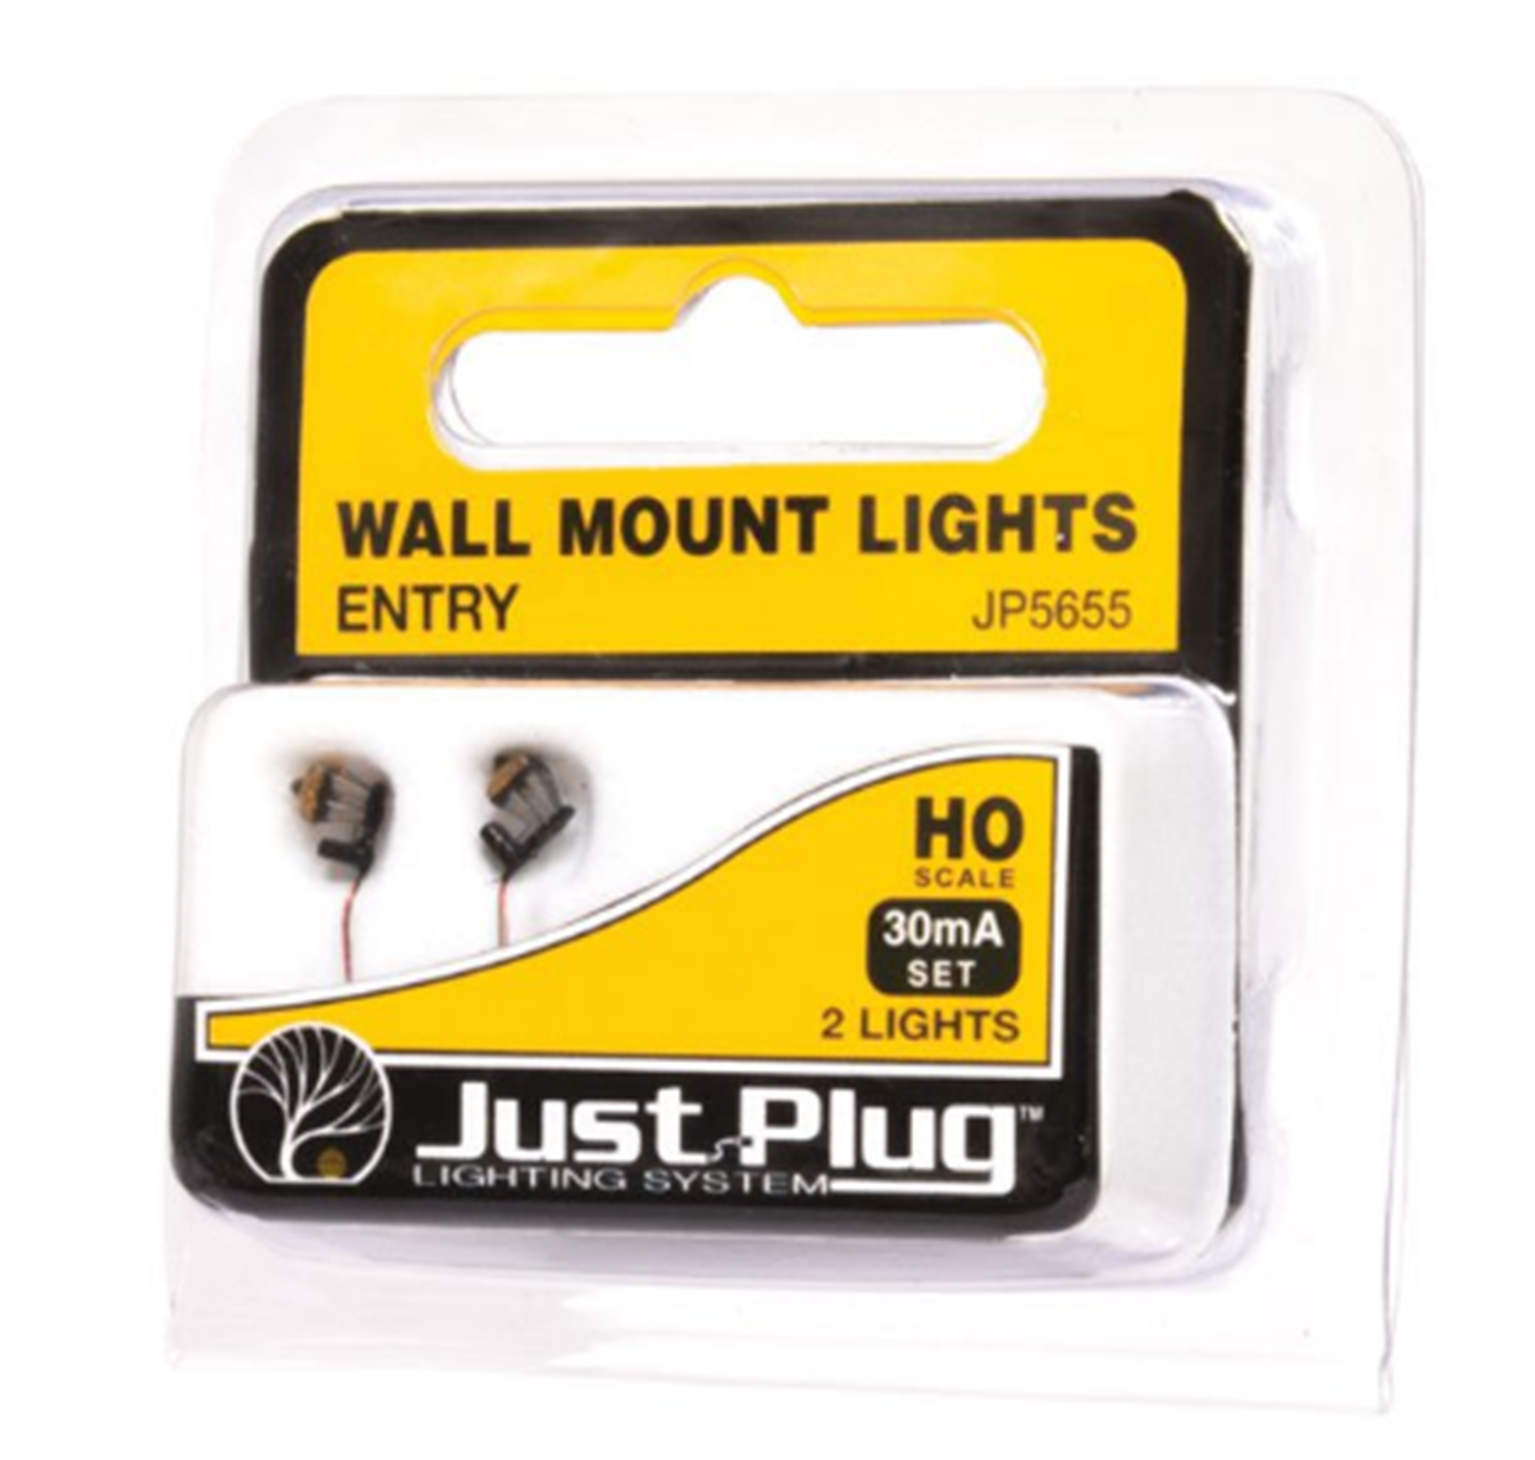 Entry Wall Mount Lights - HO Scale